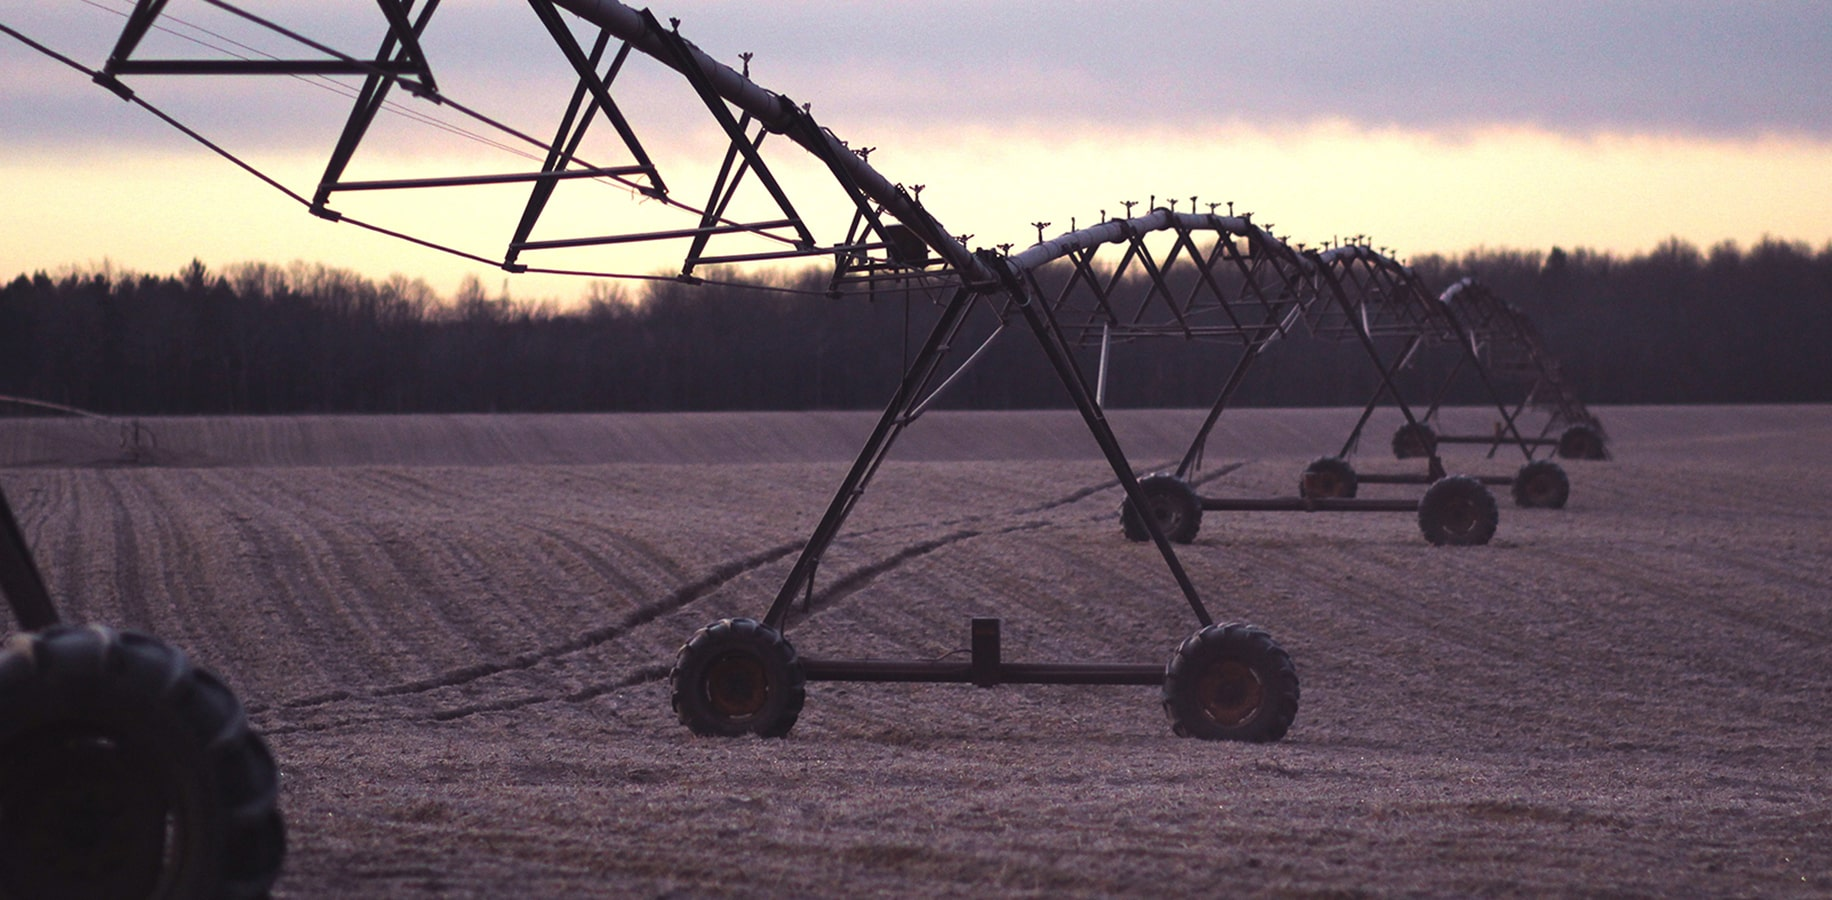 Pivot irrigation on a field